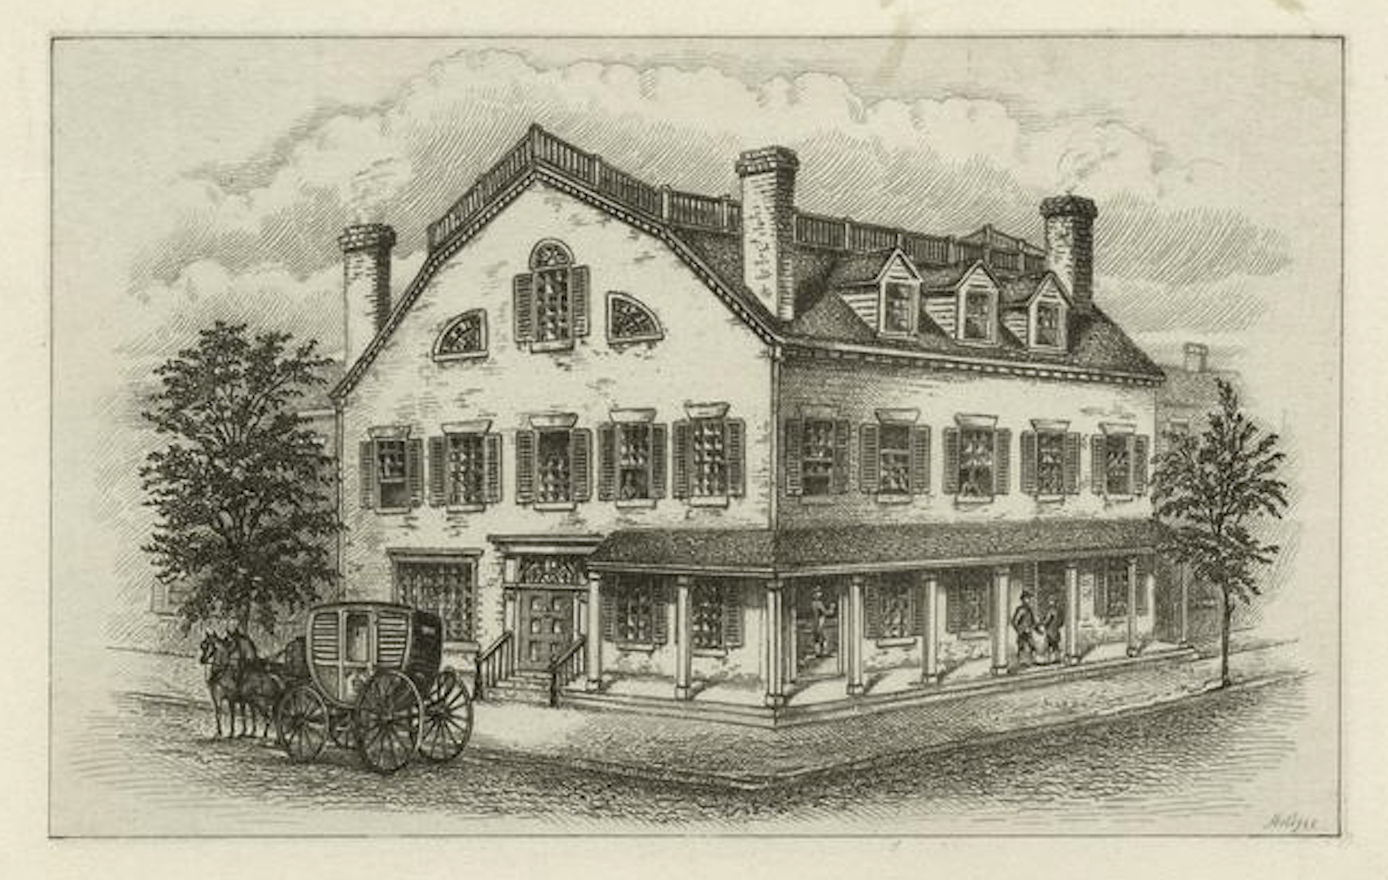 Fraunces Tavern in 1777,  as imagined in the late 19thc. Image: New York Public Library.